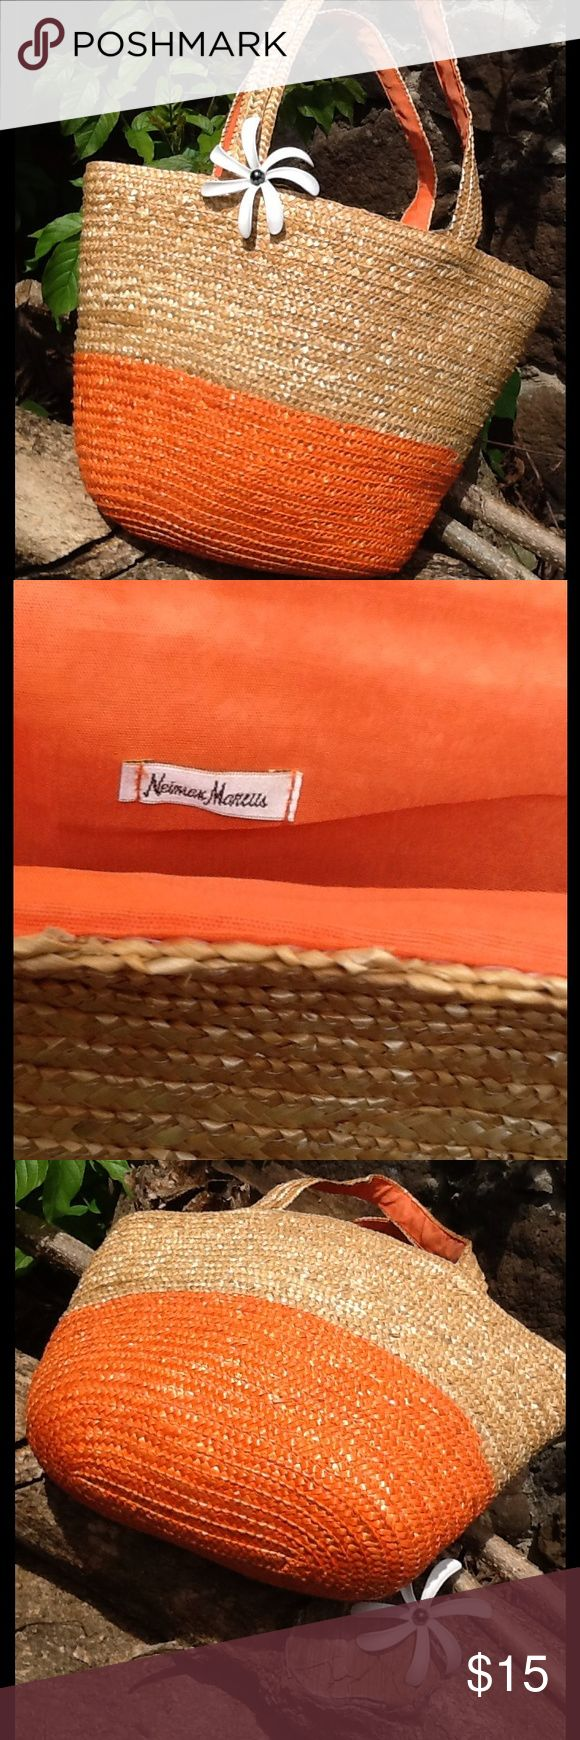 "☀️NEIMAN MARCUS Large Straw Orange Tote Bag ☀️This tote bag is in excellent condition with no visible signs of wear.  Beautiful woven straw tote bag with orange lining. Perfect beach, pool or to take use when shopping.  The strap drop is 9.5"".☀️ Neiman Marcus Bags Totes"